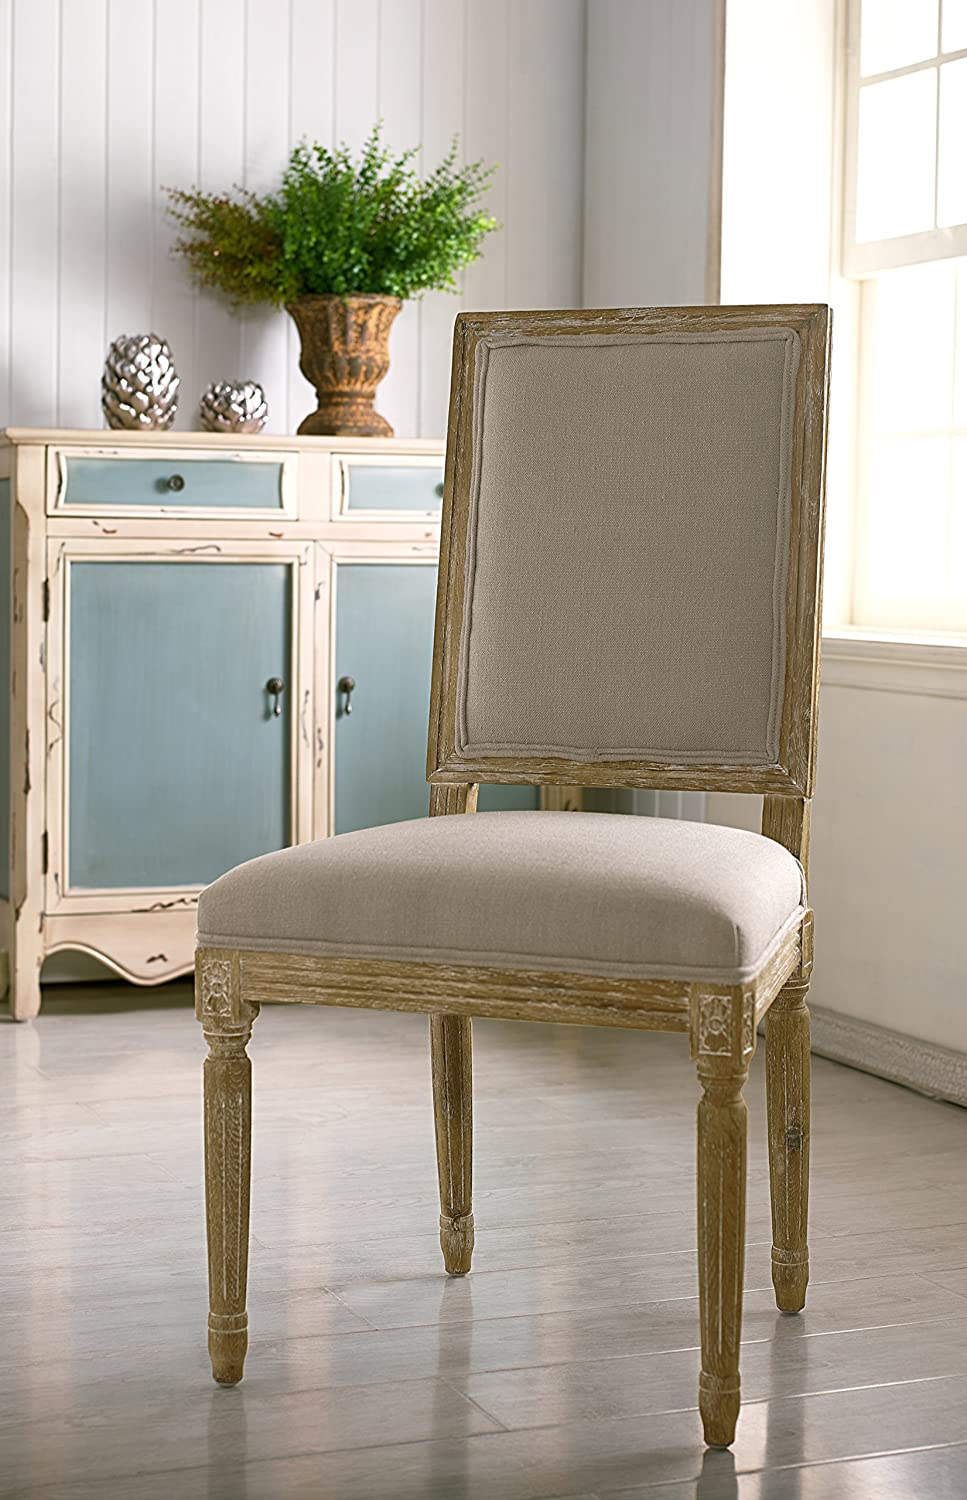 Linen French Accent Chair. French Country Furniture Finds. Because European country and French farmhouse style is easy to love. Rustic elegant charm is lovely indeed.